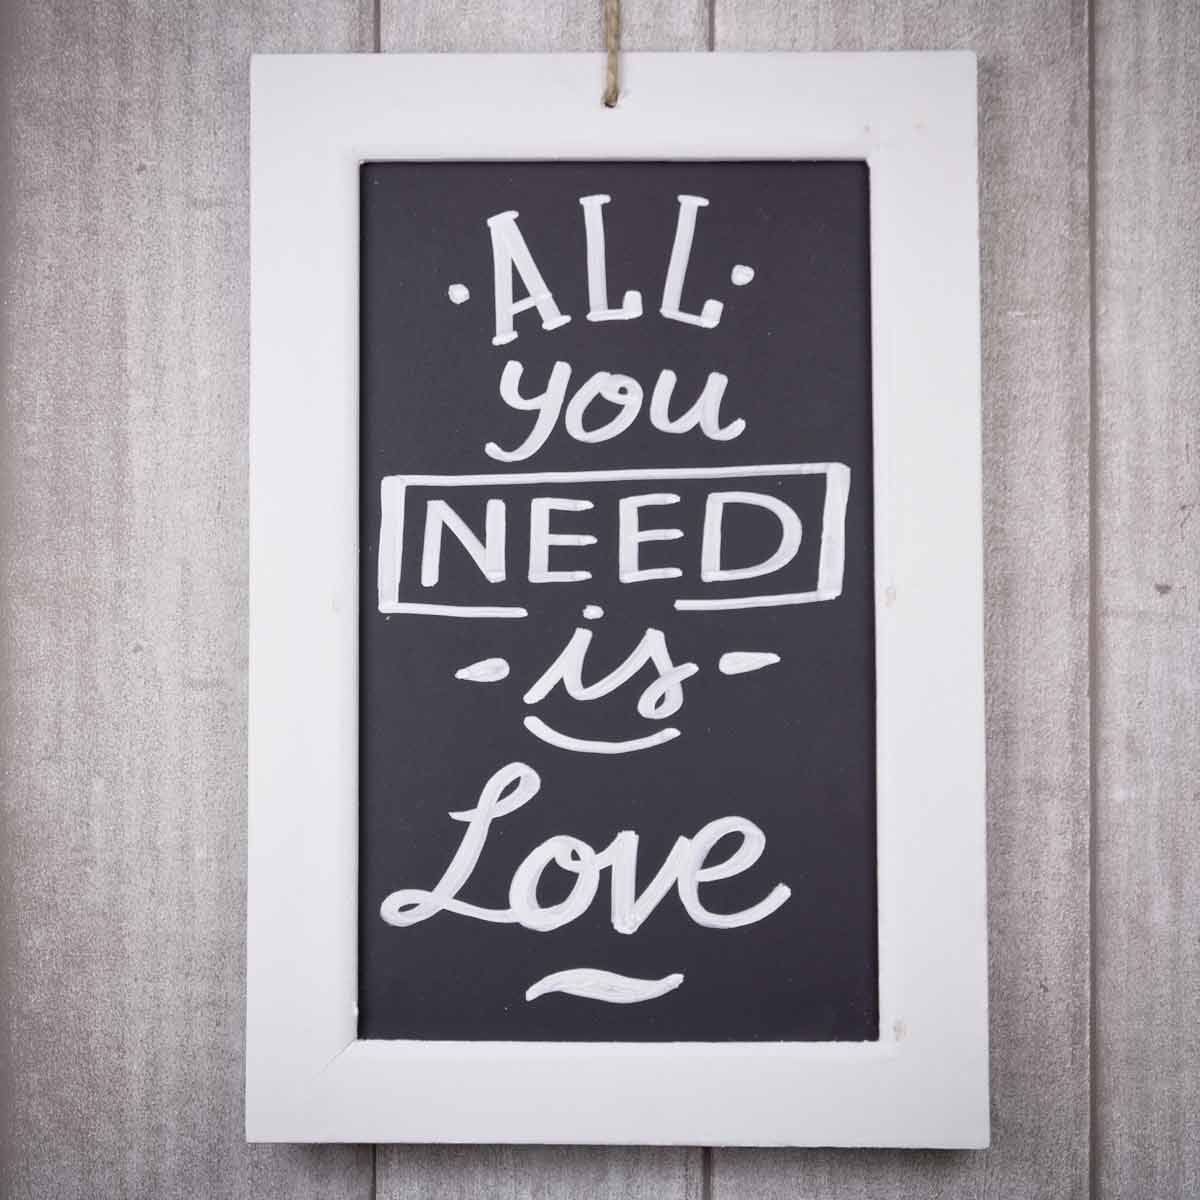 mrwonderful_pizarra_all-you-need-love_04